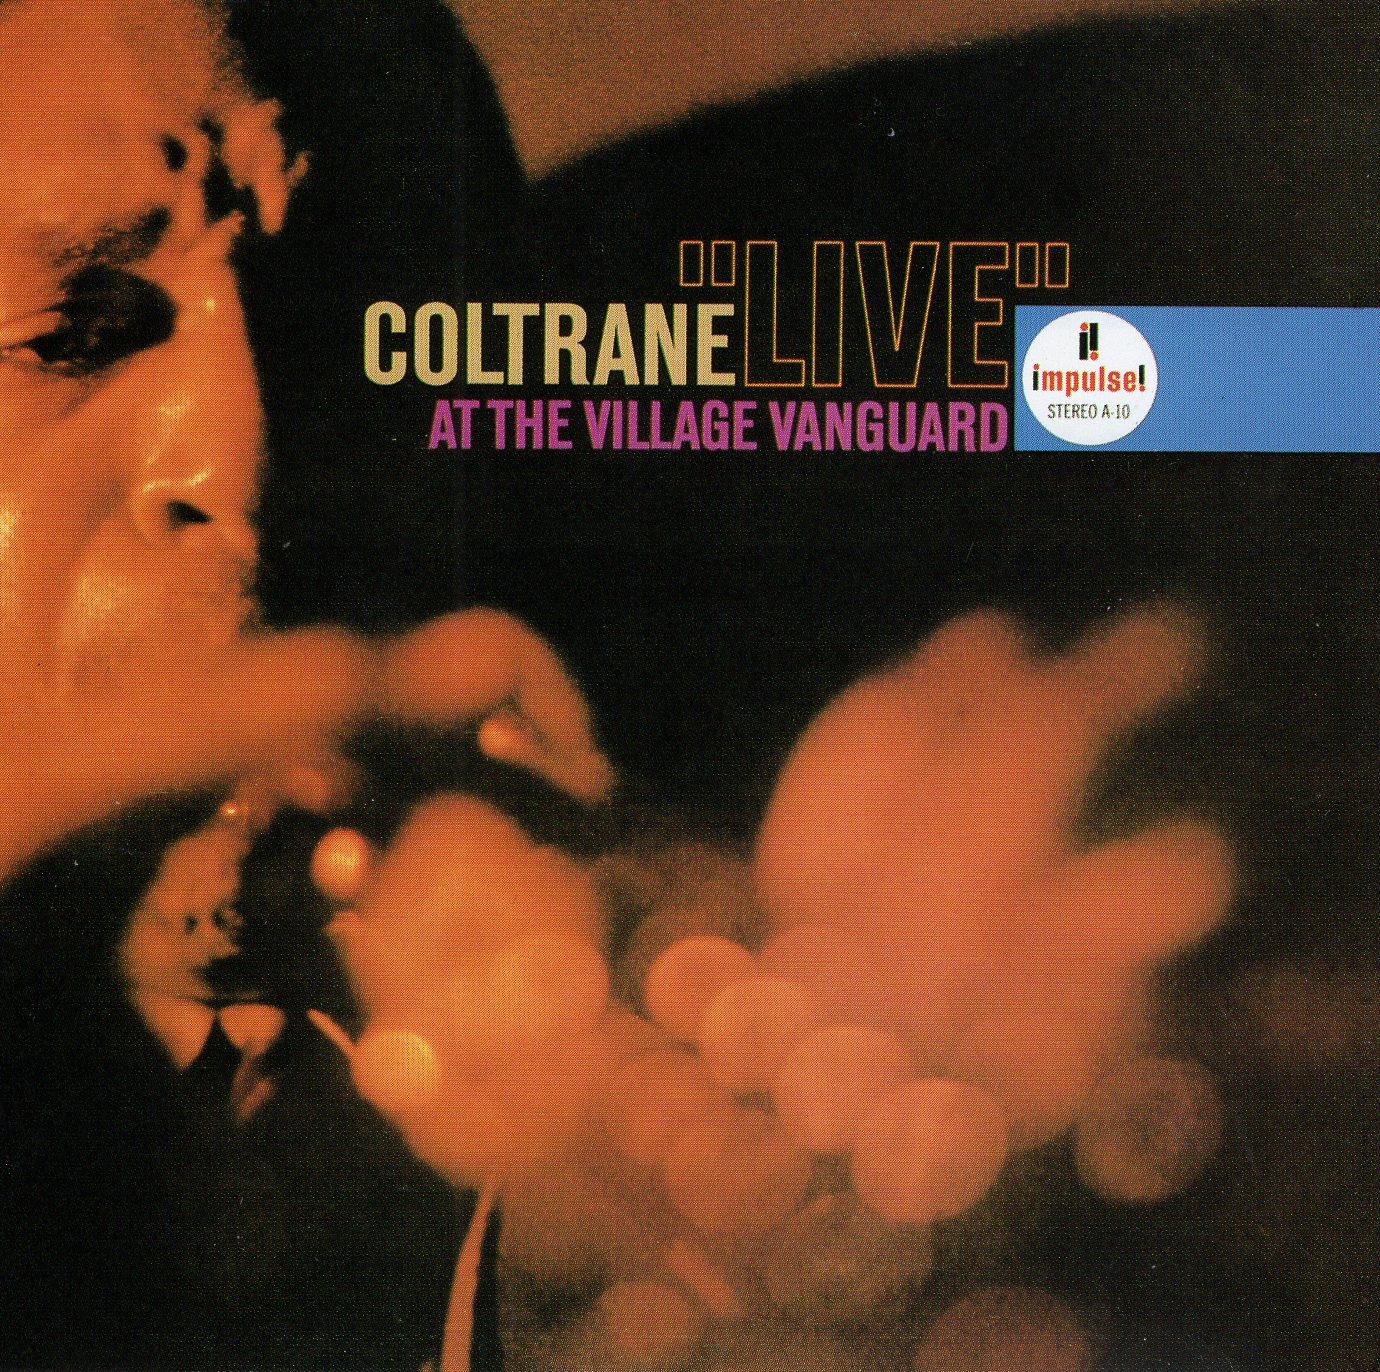 """Coltrane Live at The Village Vanguard"" John Coltrane"